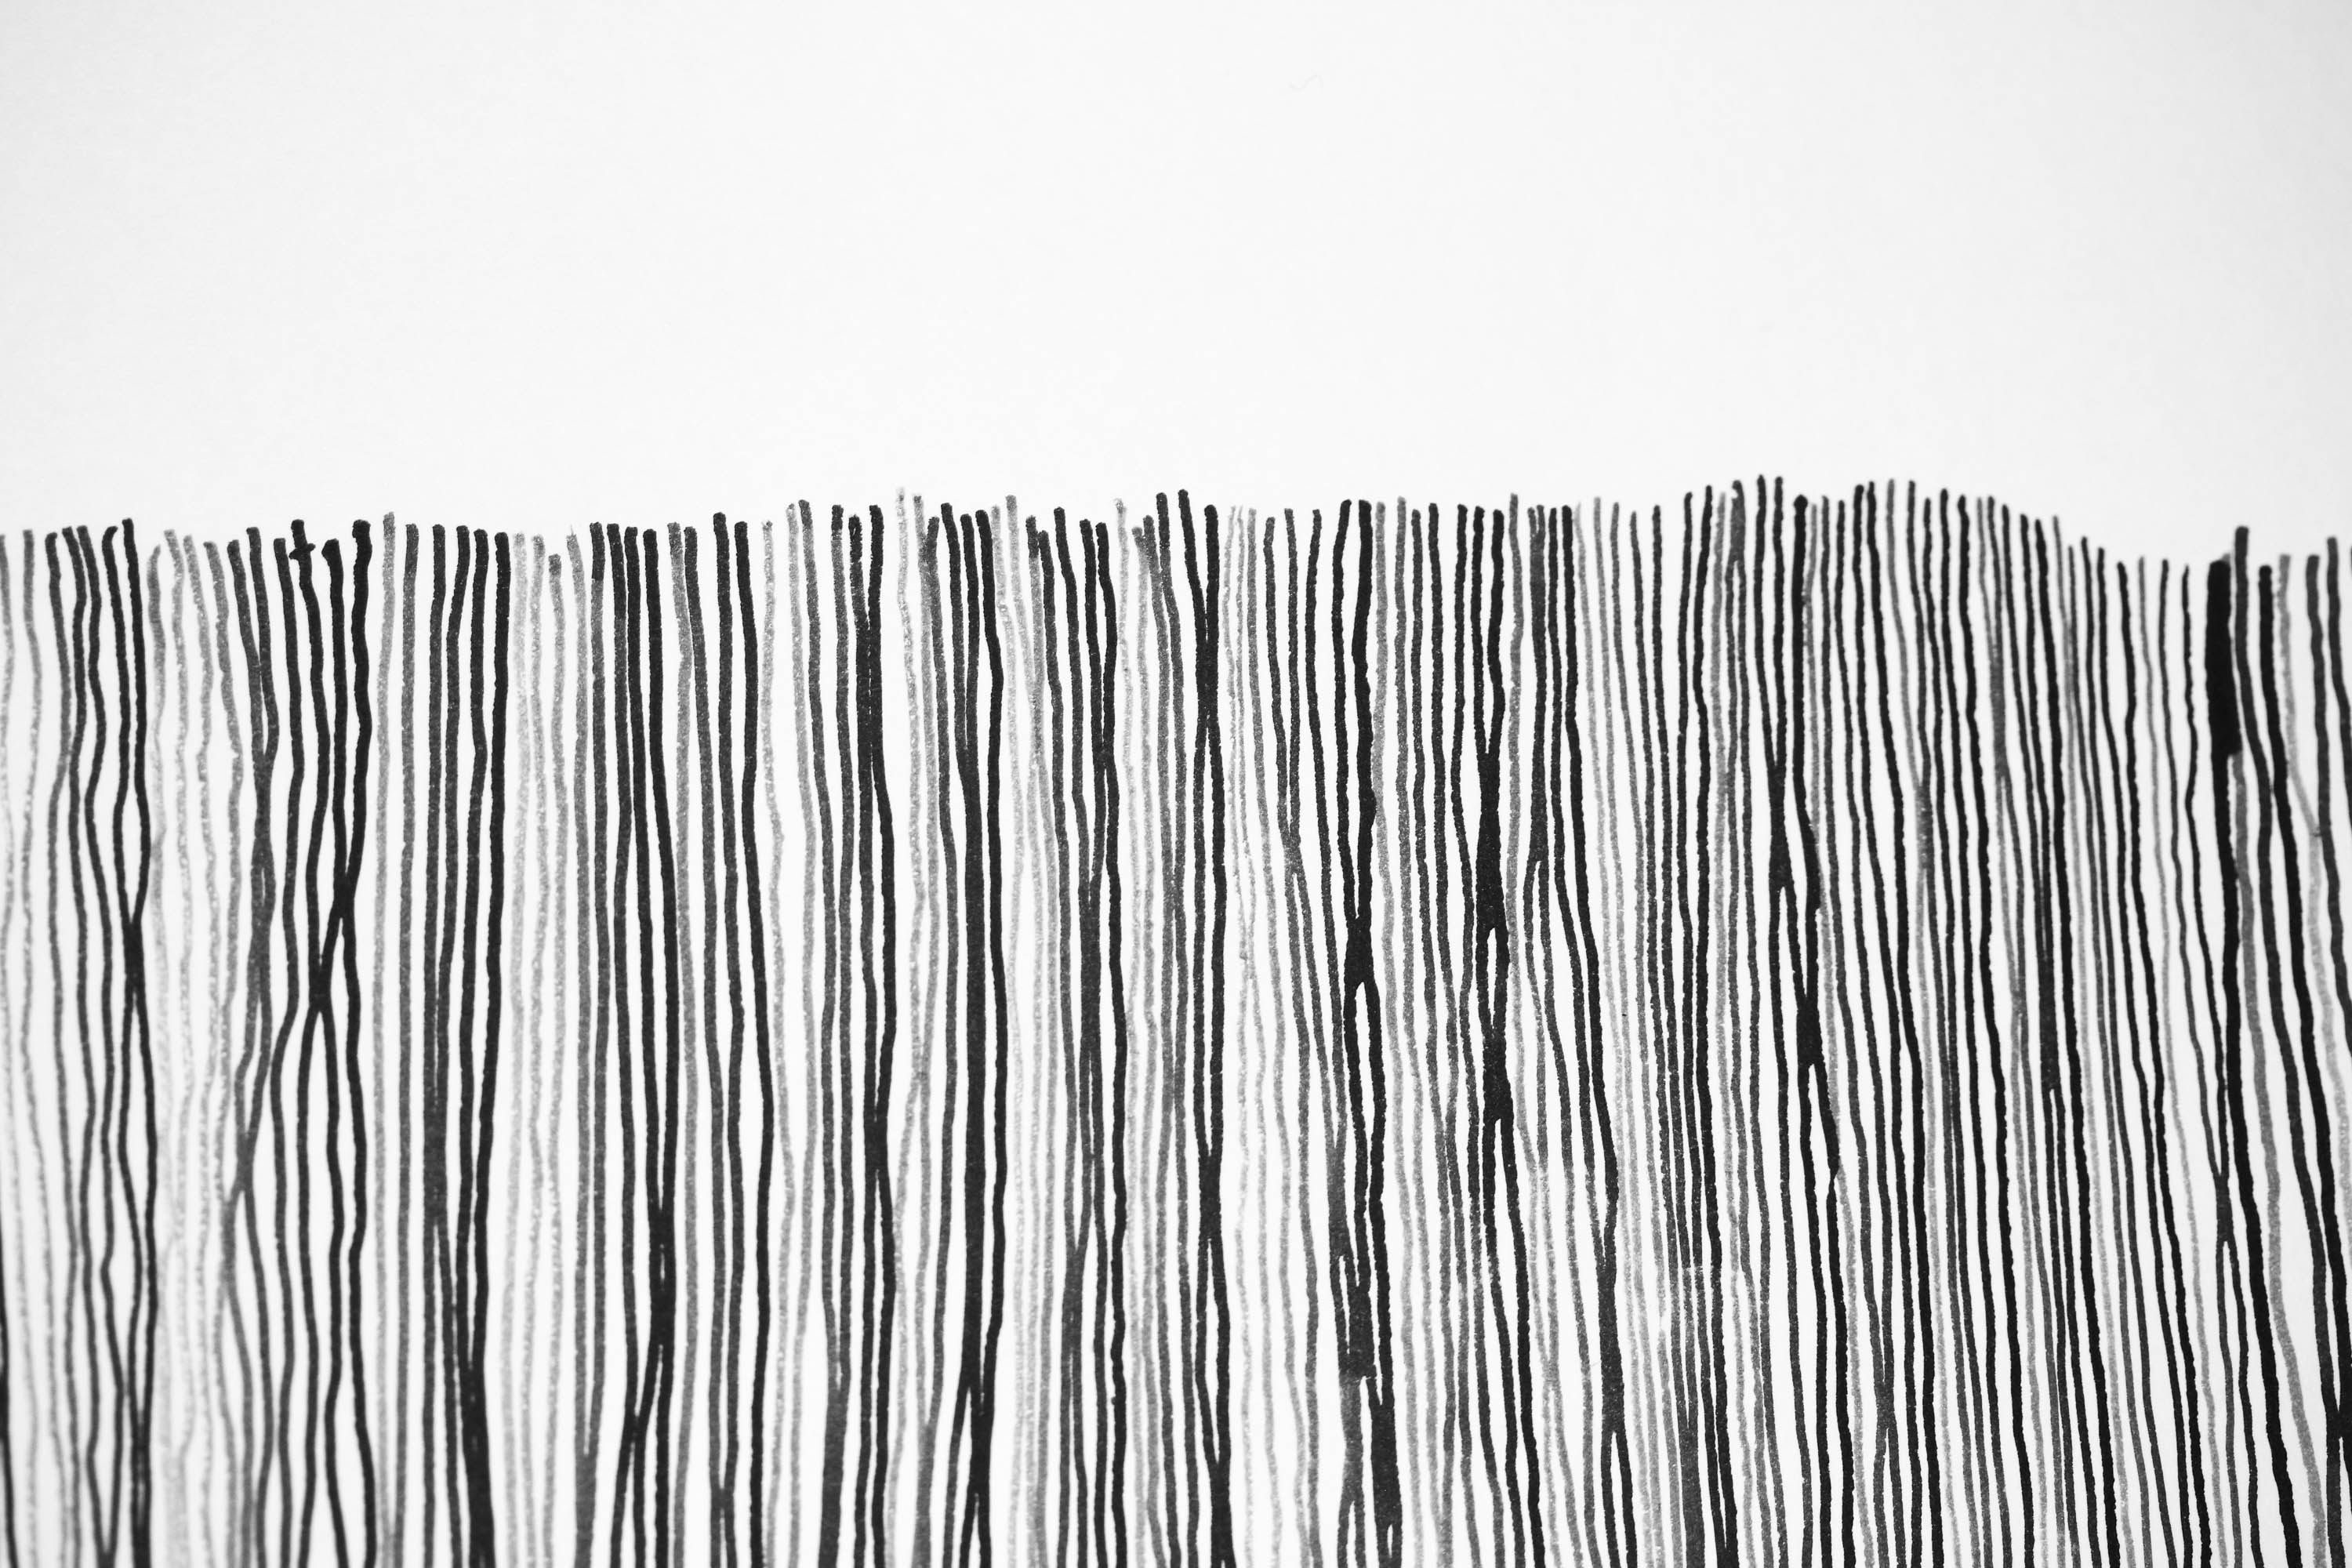 Inklines drawing - simple ink lines arranged vertically. Inspired by a visit to Ness of Brodgar, Orkney